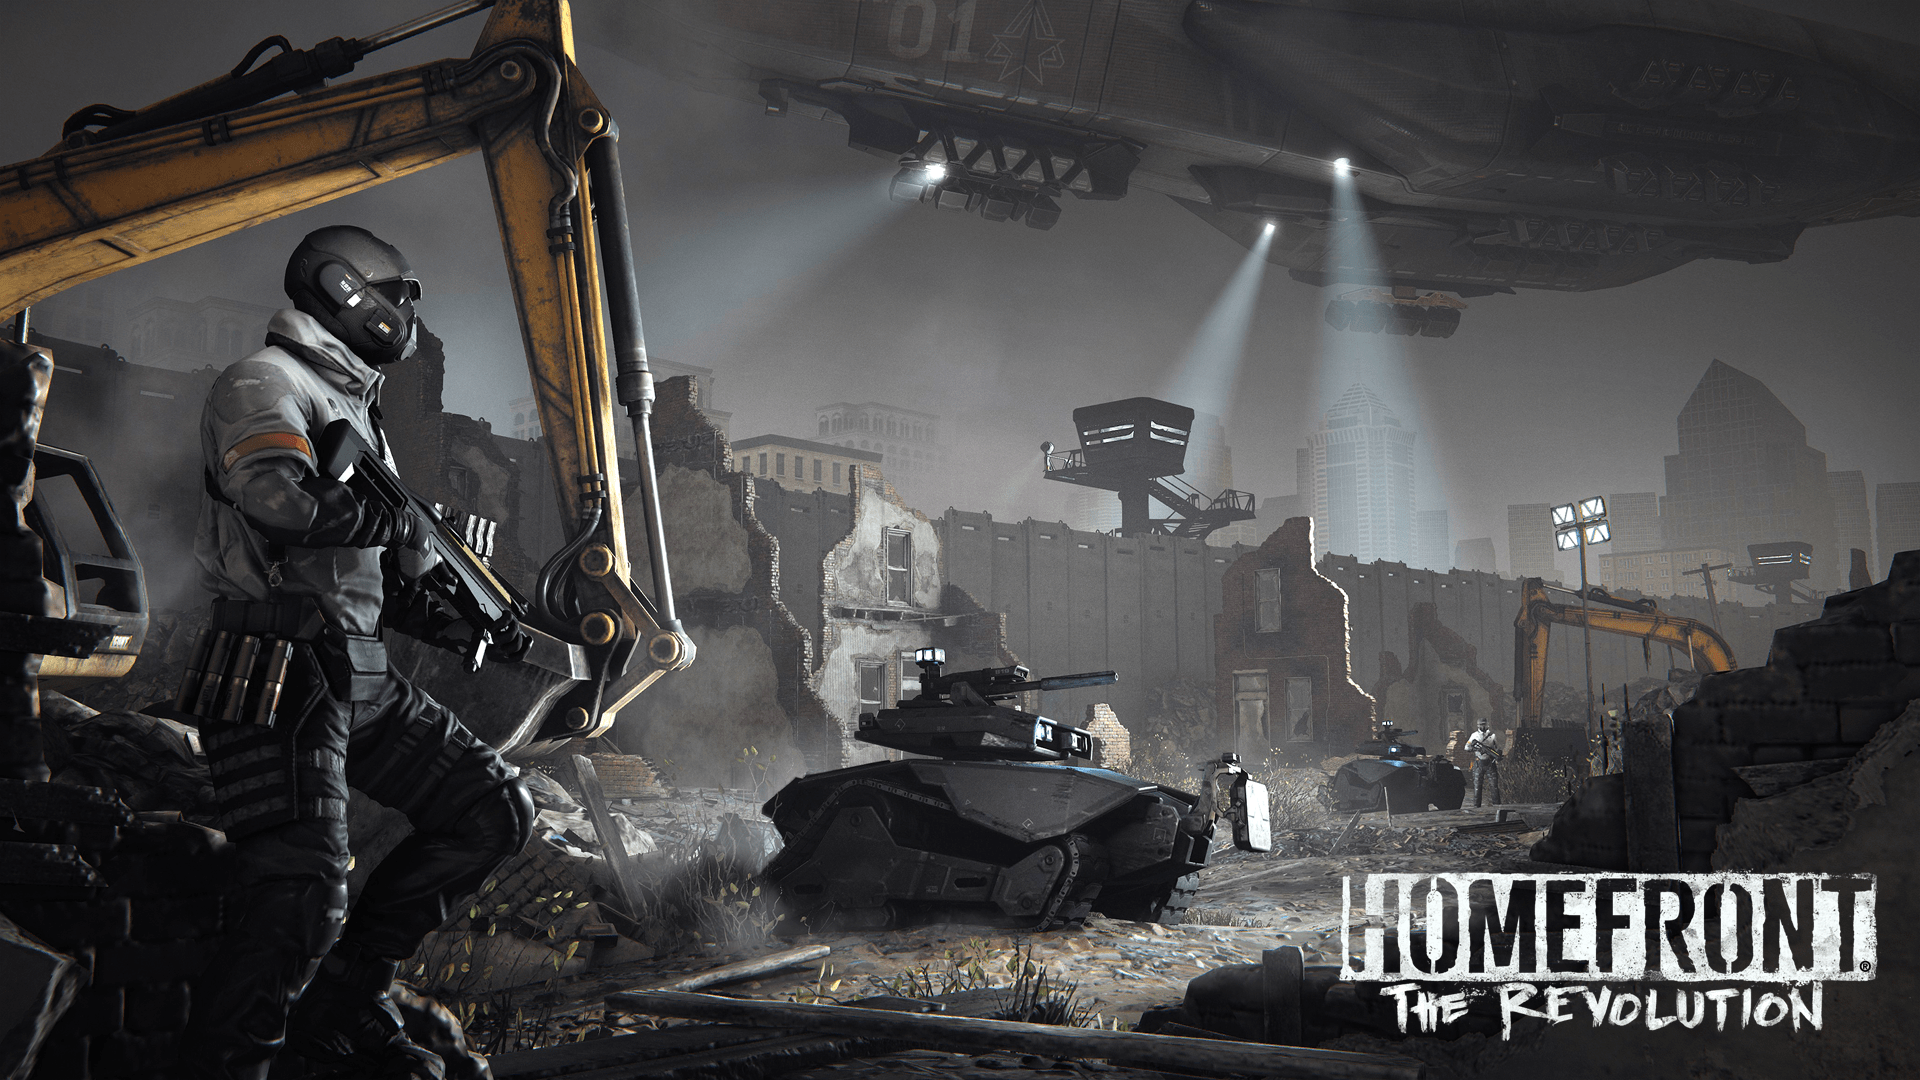 homefront pic 2 - Homefront Video Game PNG